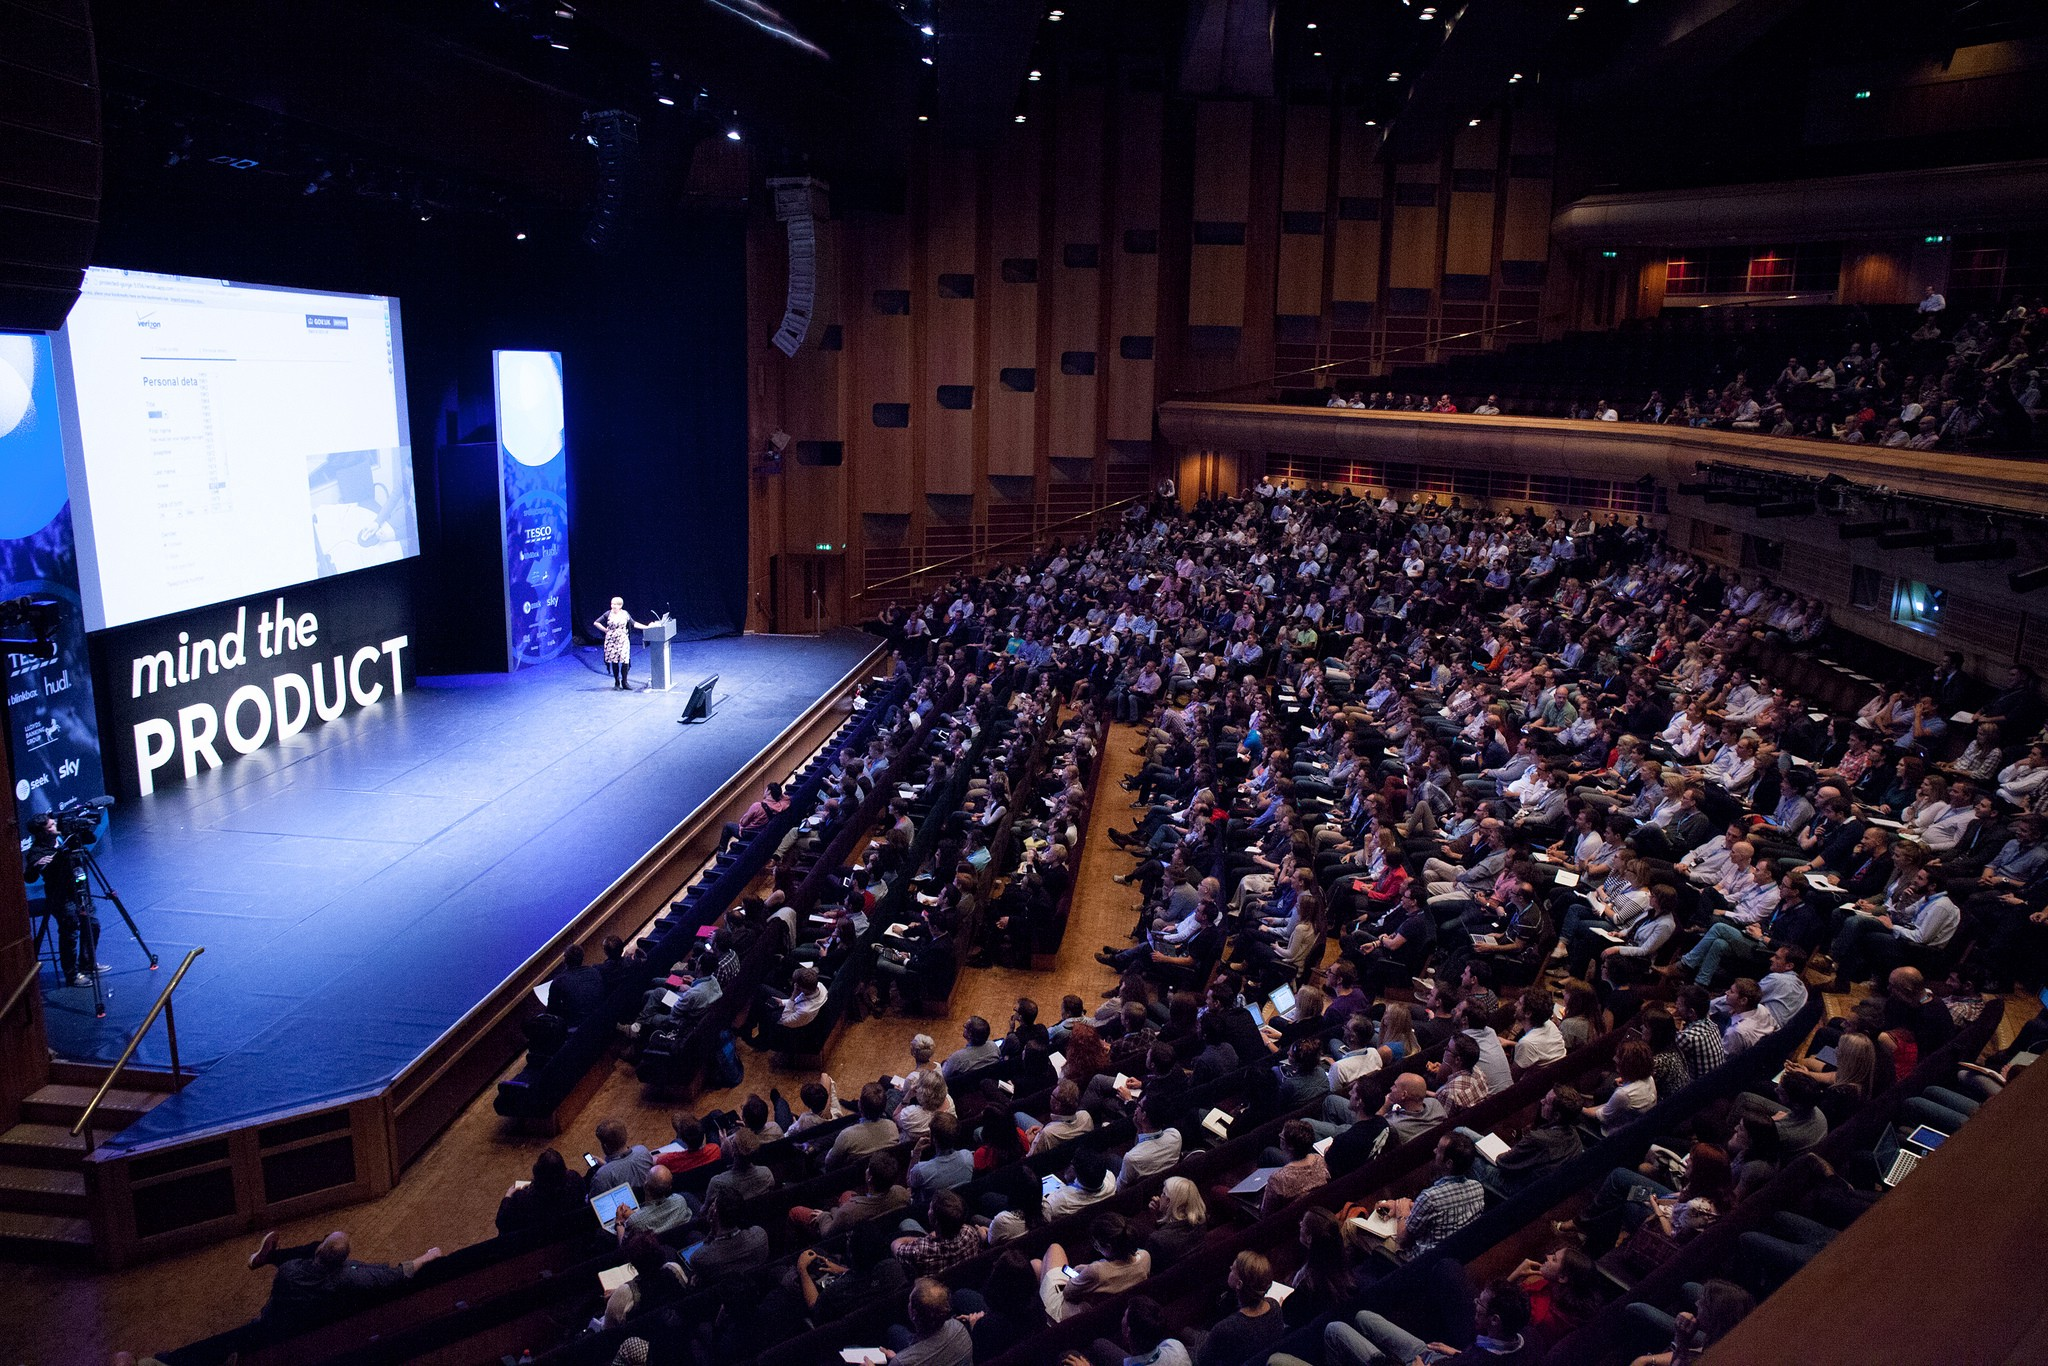 The PM Conference Grab Bag: Top 10 mobile PM events in the